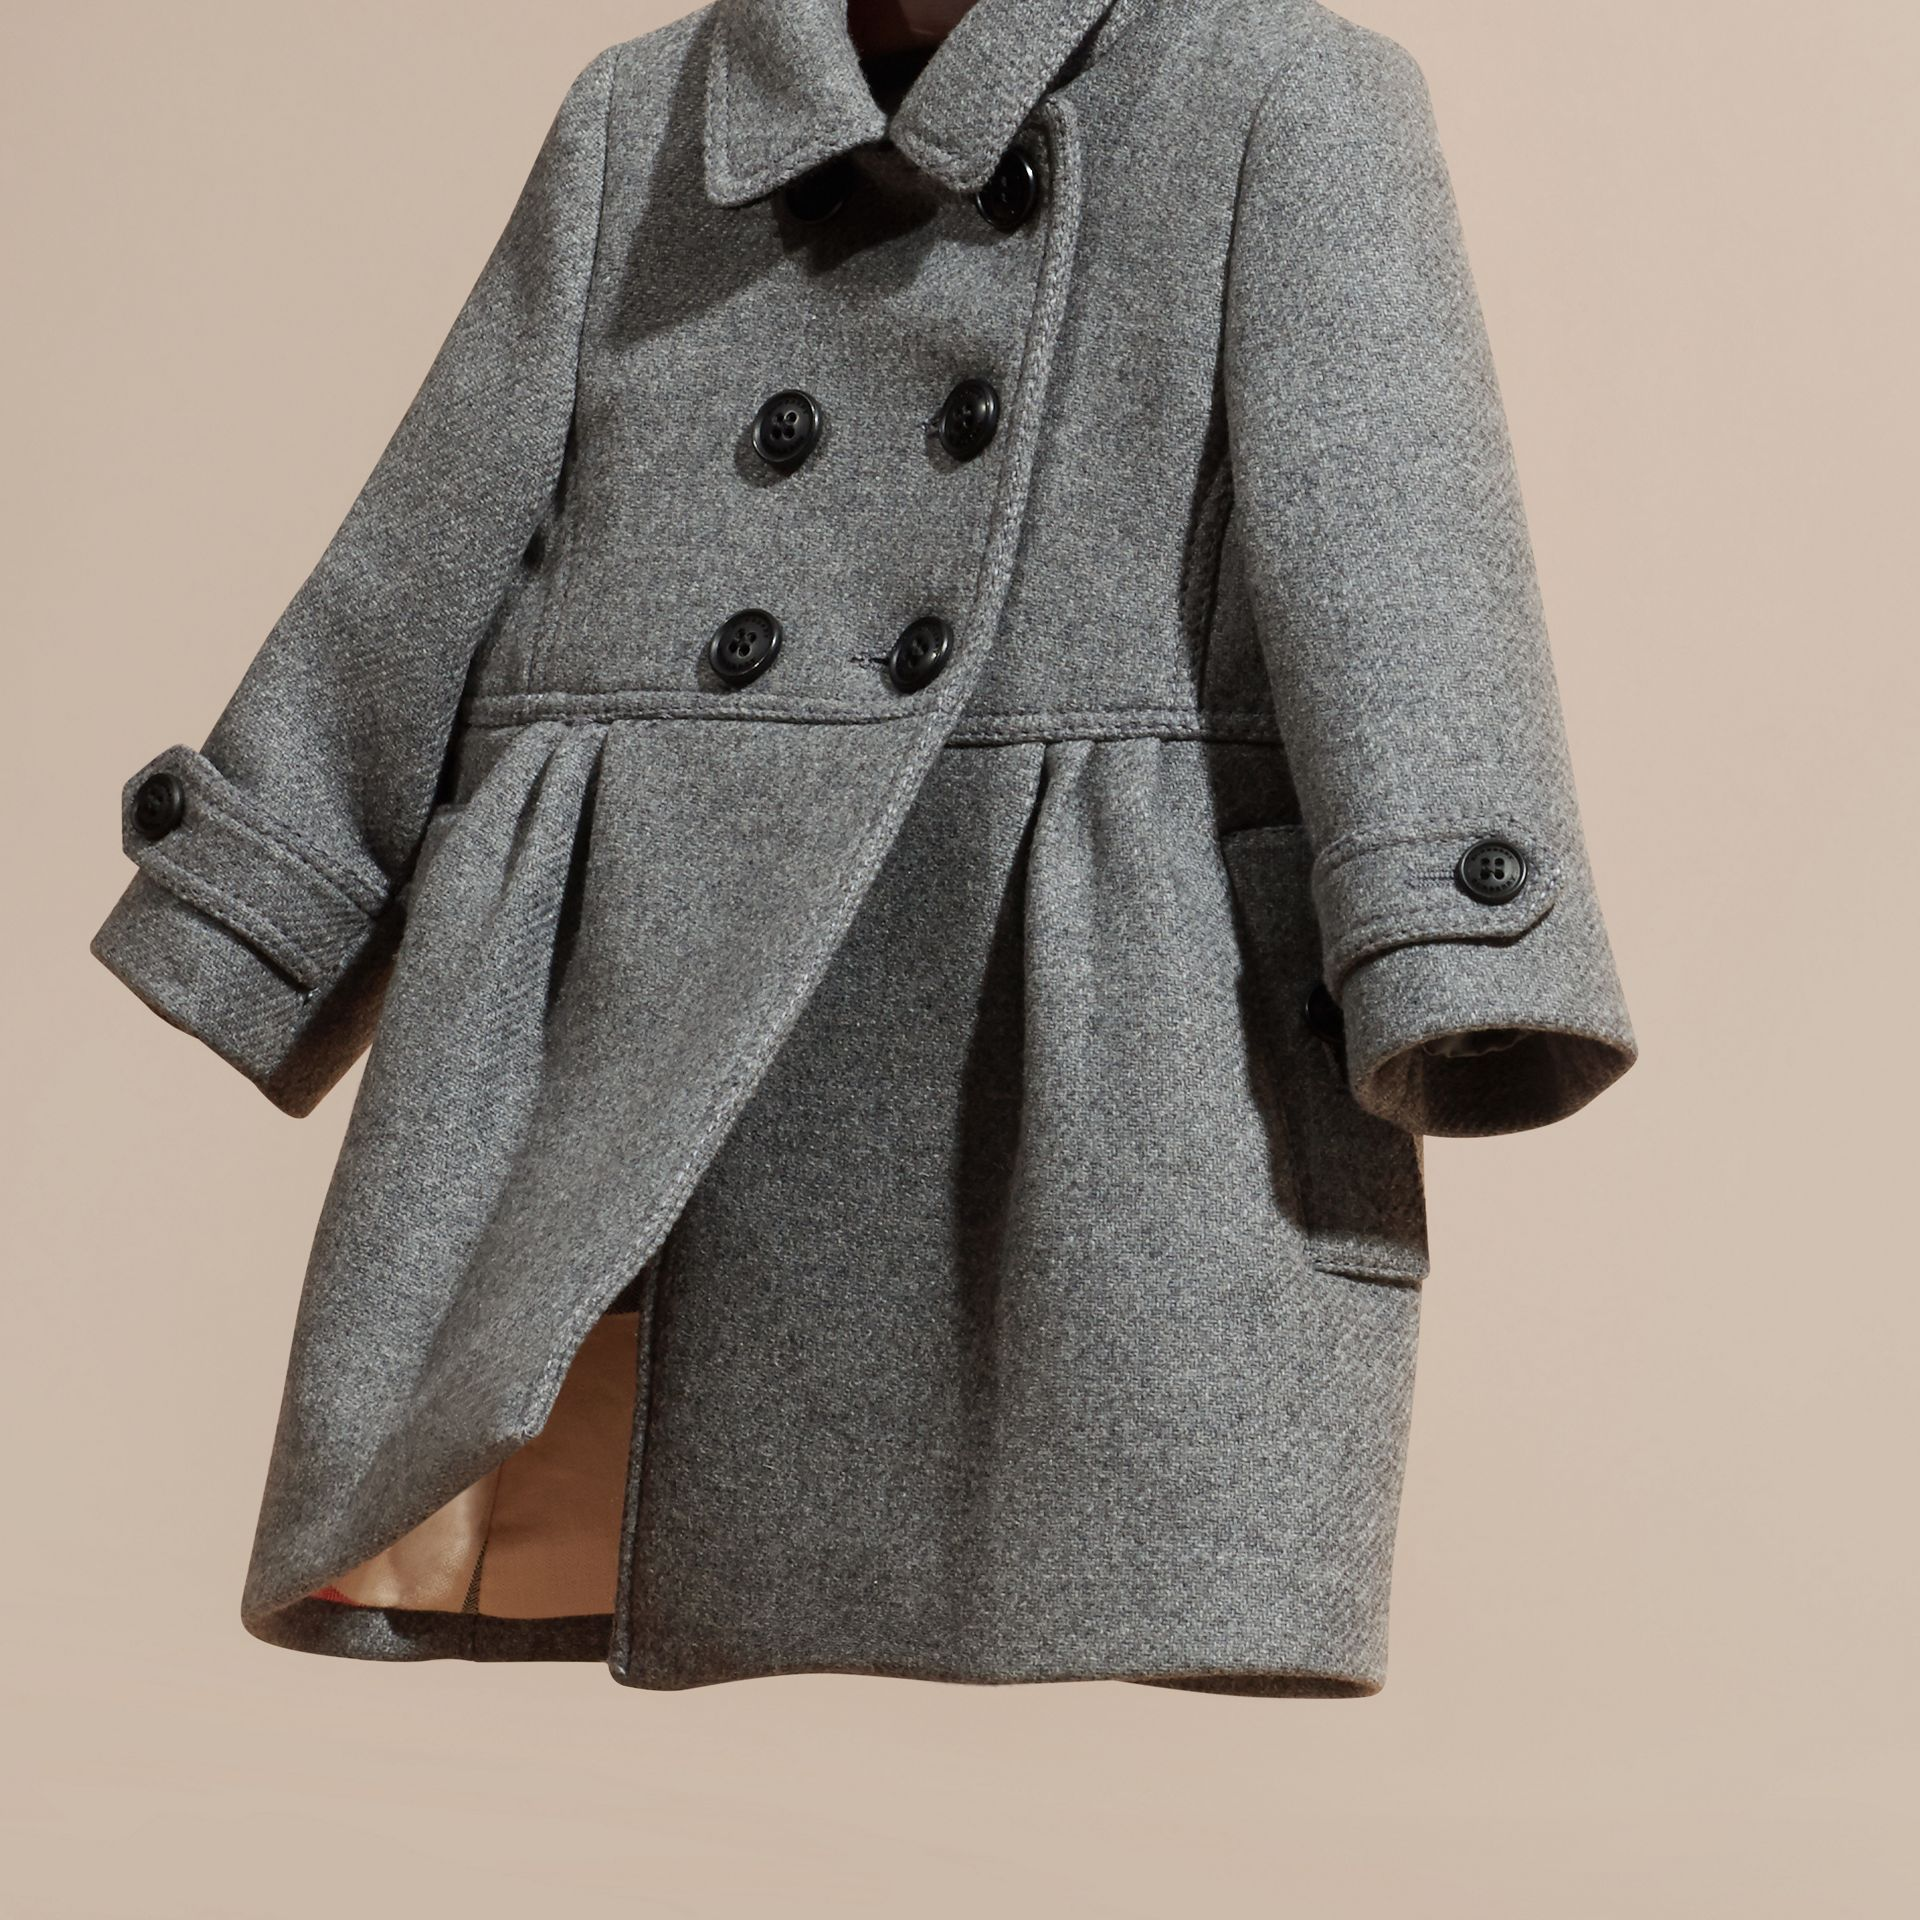 Steel grey melange Tailored Wool Cashmere Blend Coat Steel Grey Melange - gallery image 3